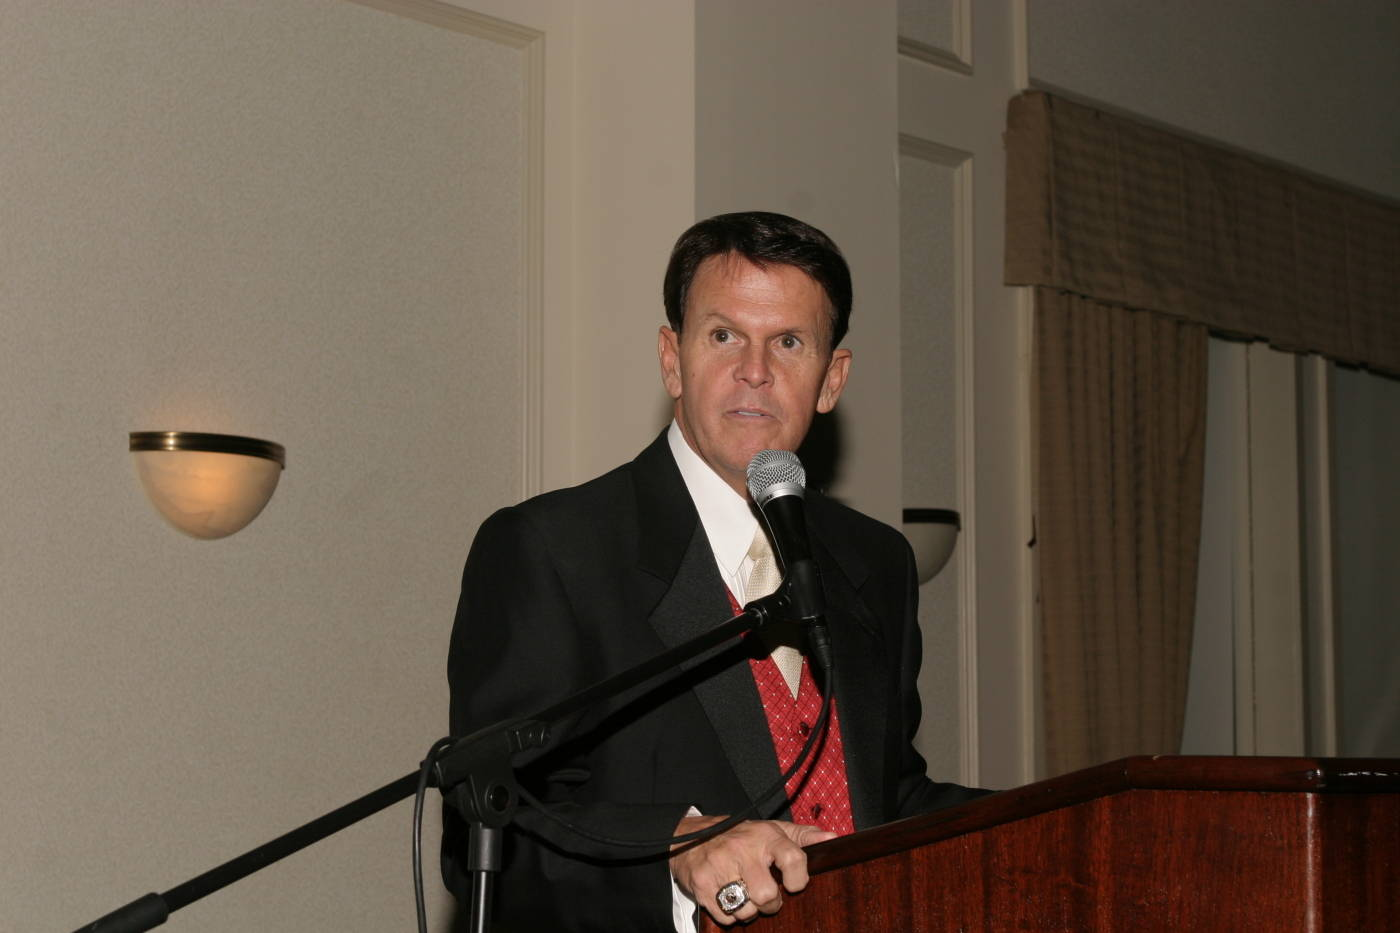 Athletics Director Dave Hart gave the Director's Address.